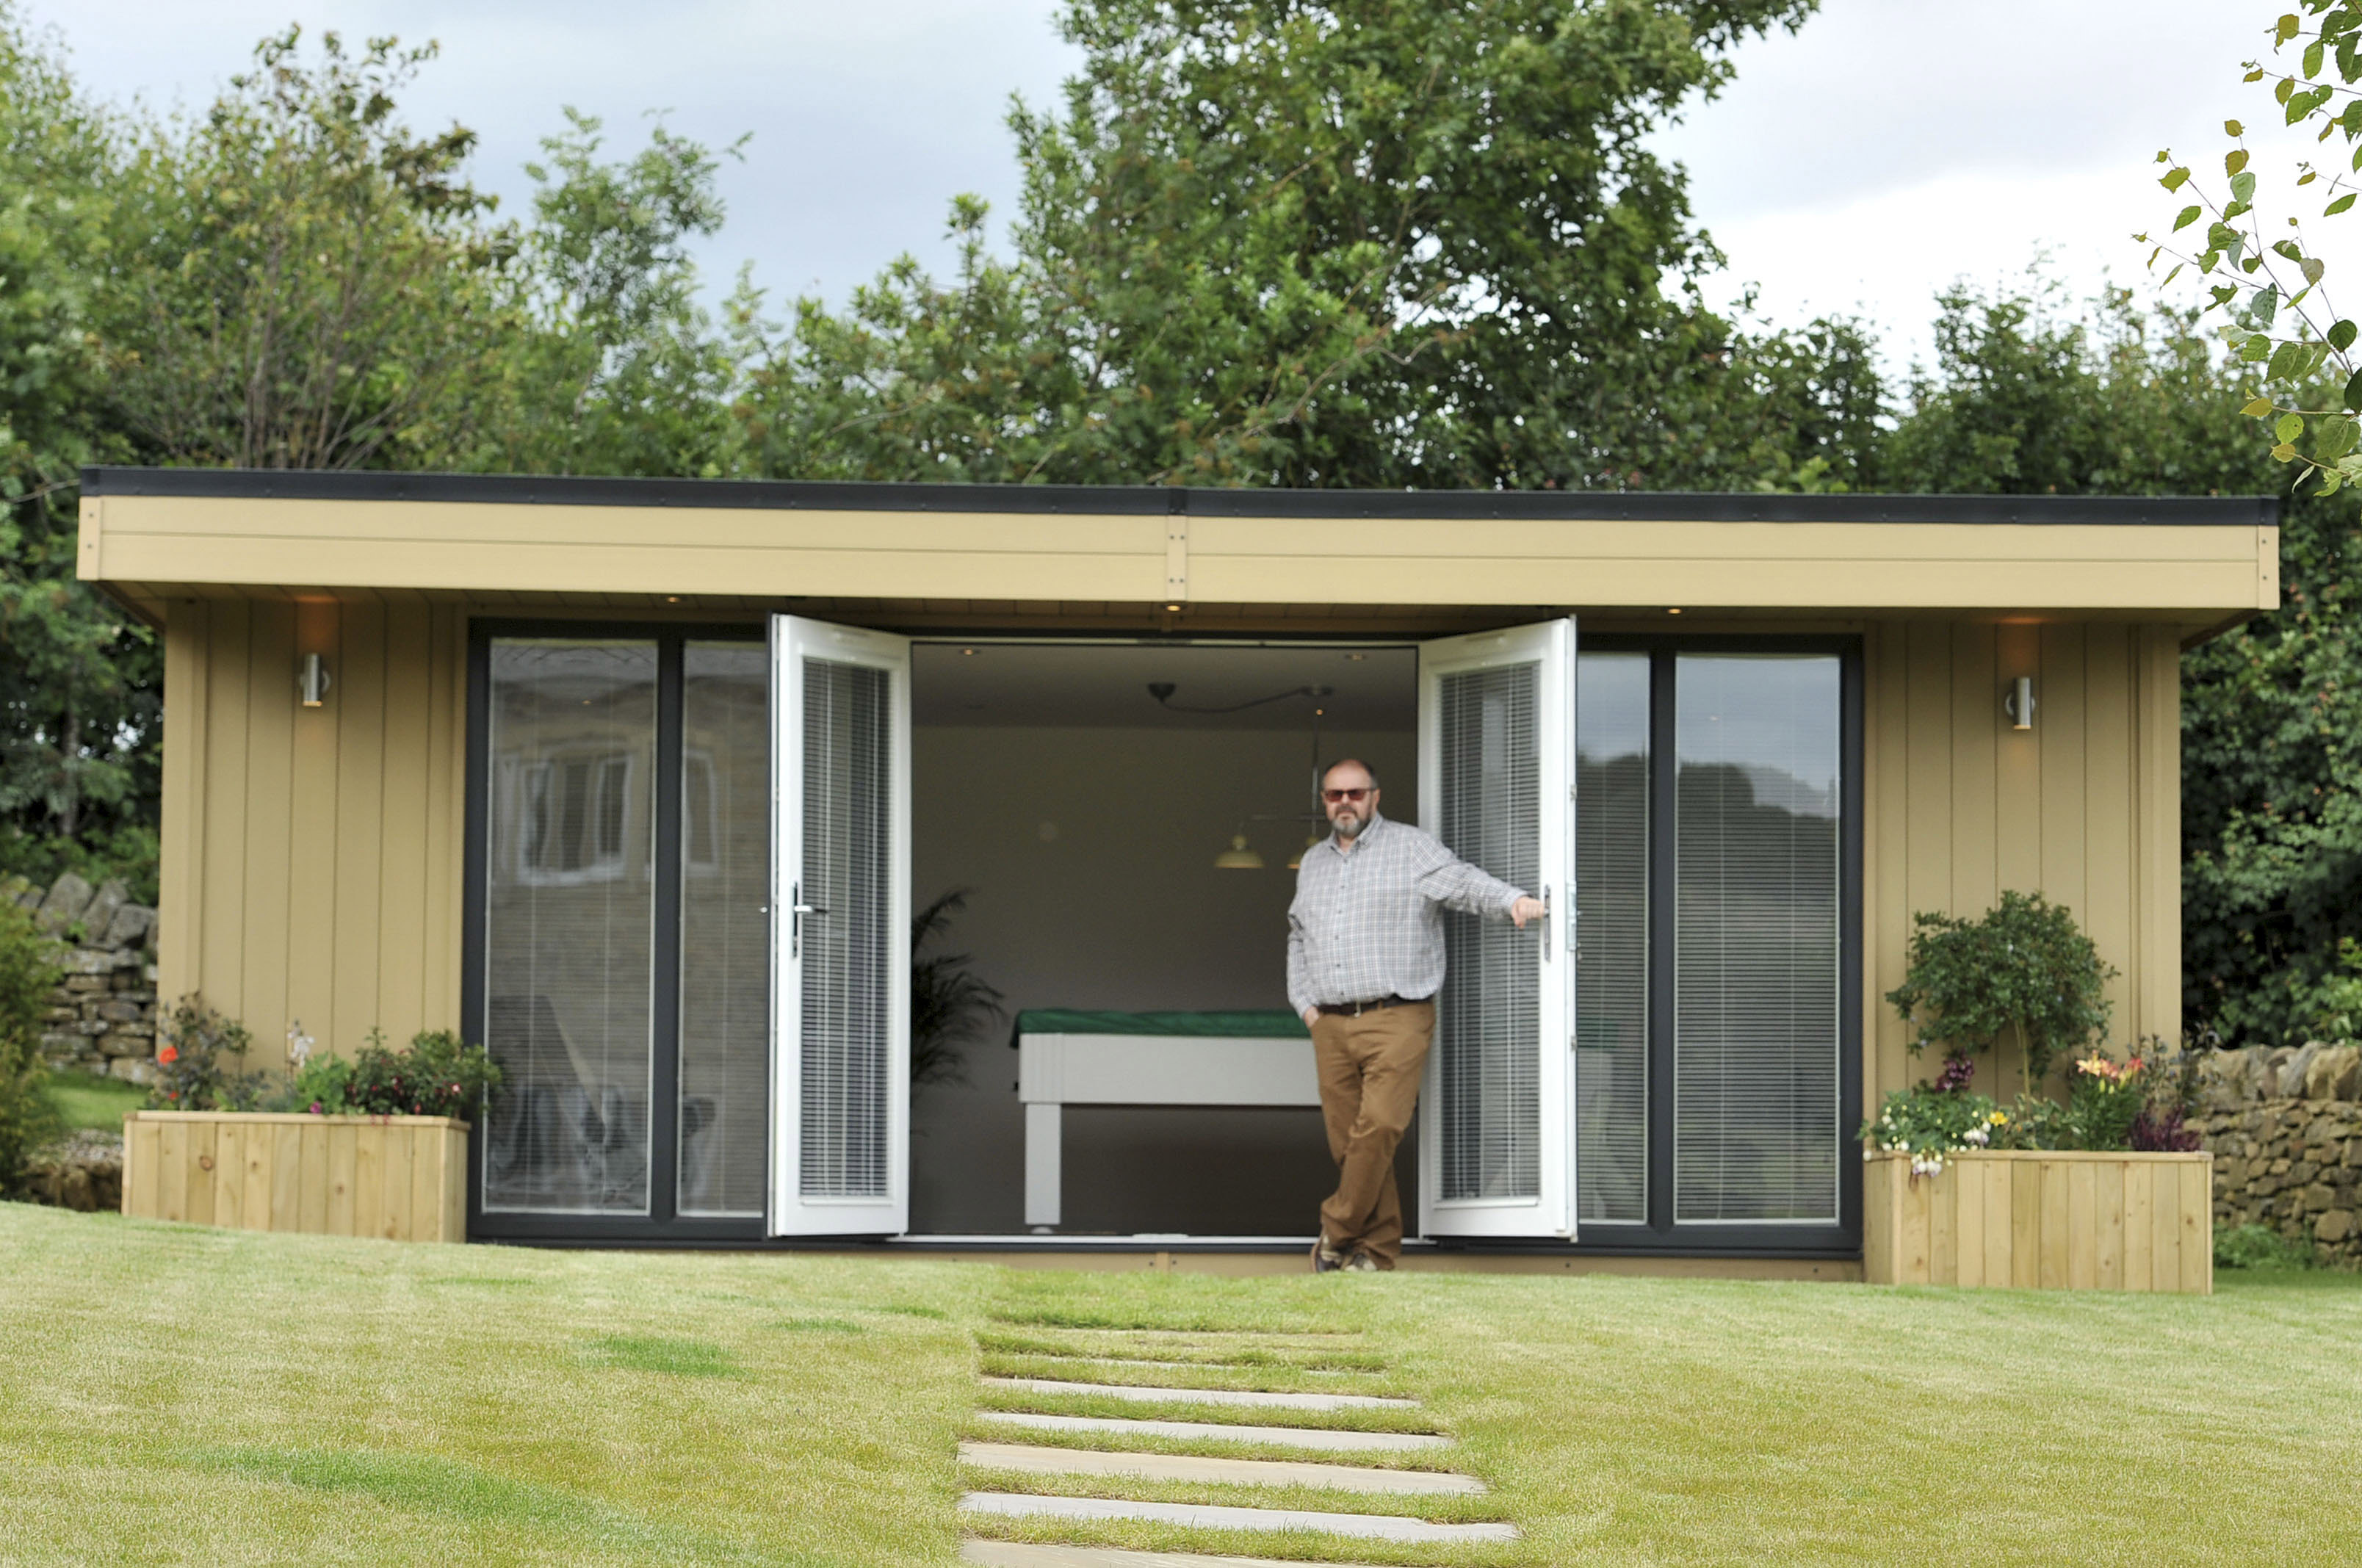 Planning And Building Regulations For Garden Rooms And Offices